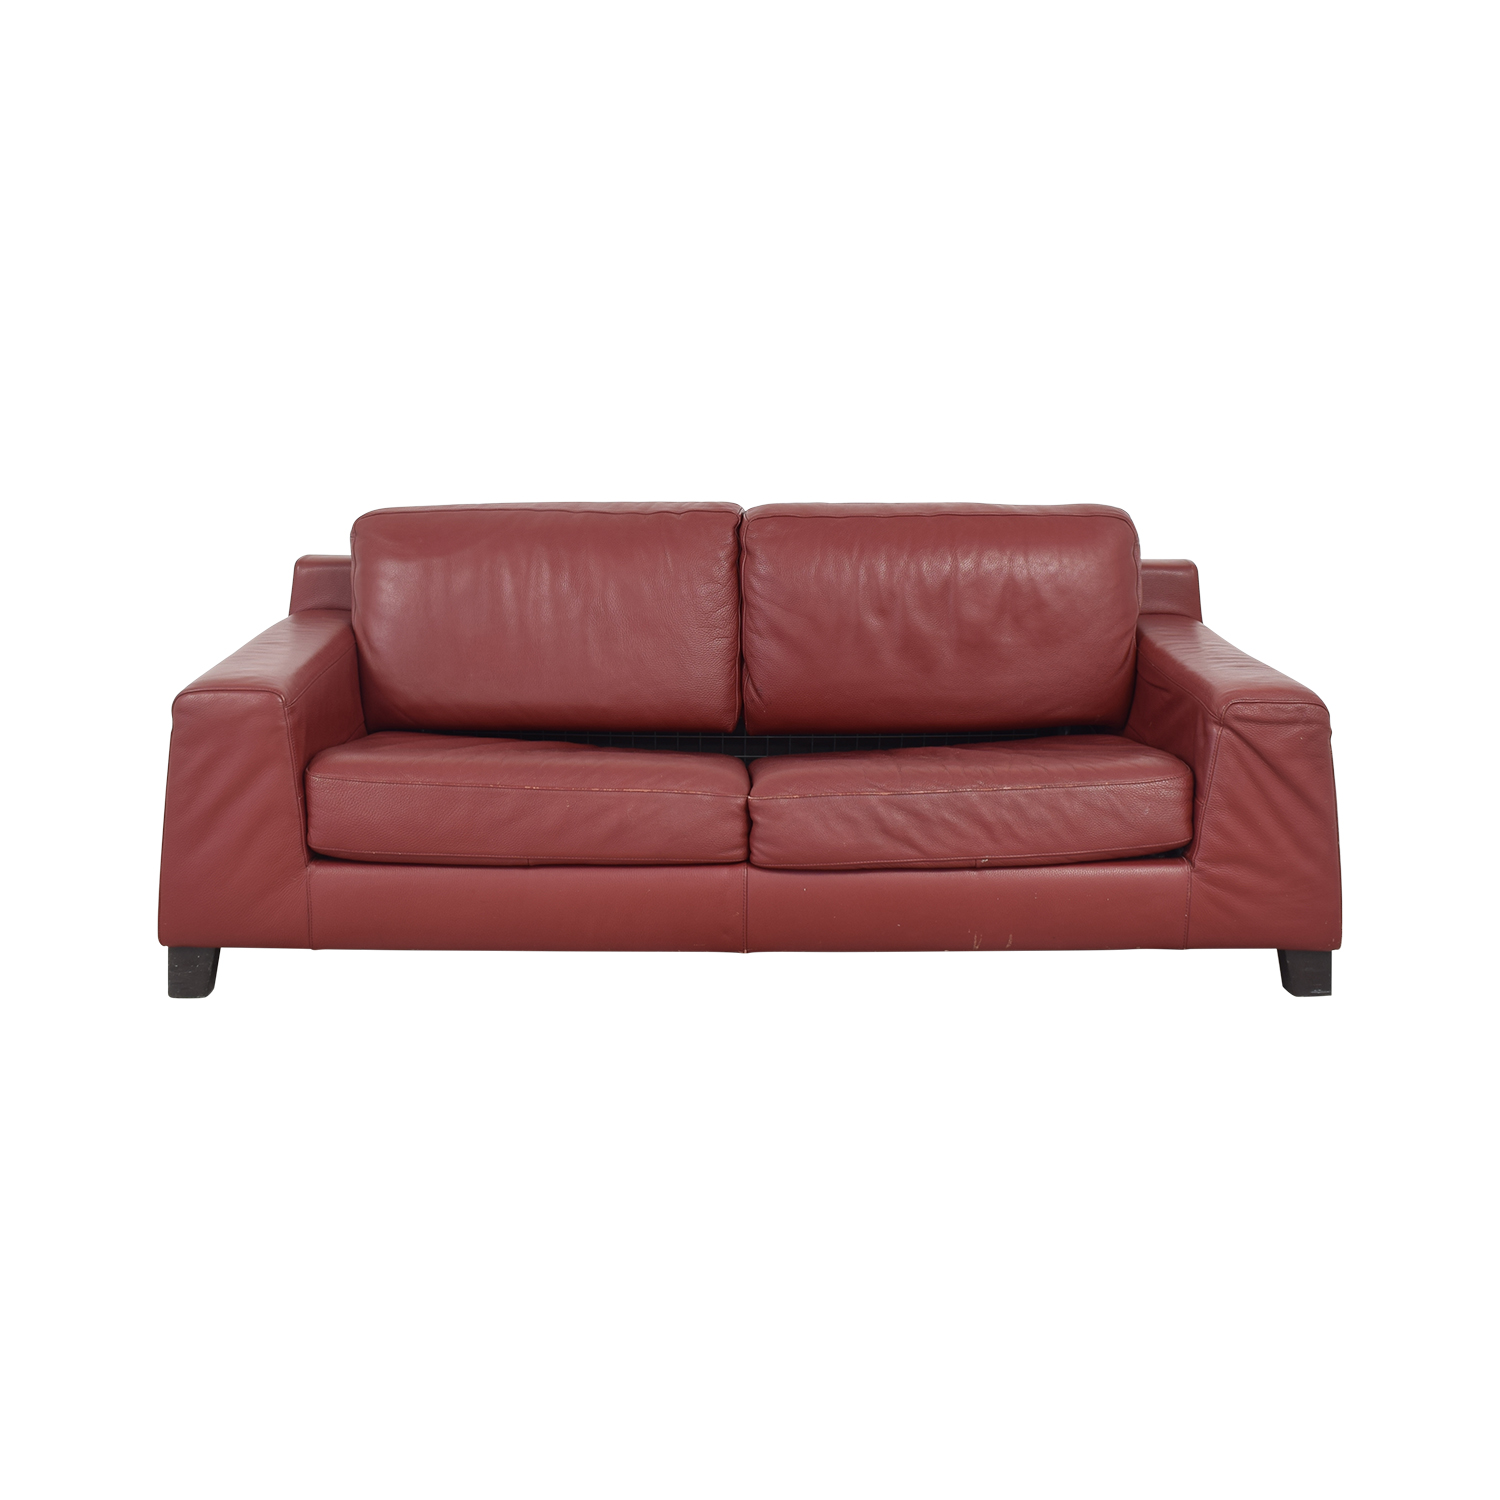 buy Natuzzi Natuzzi Leather Full Sofa Bed online